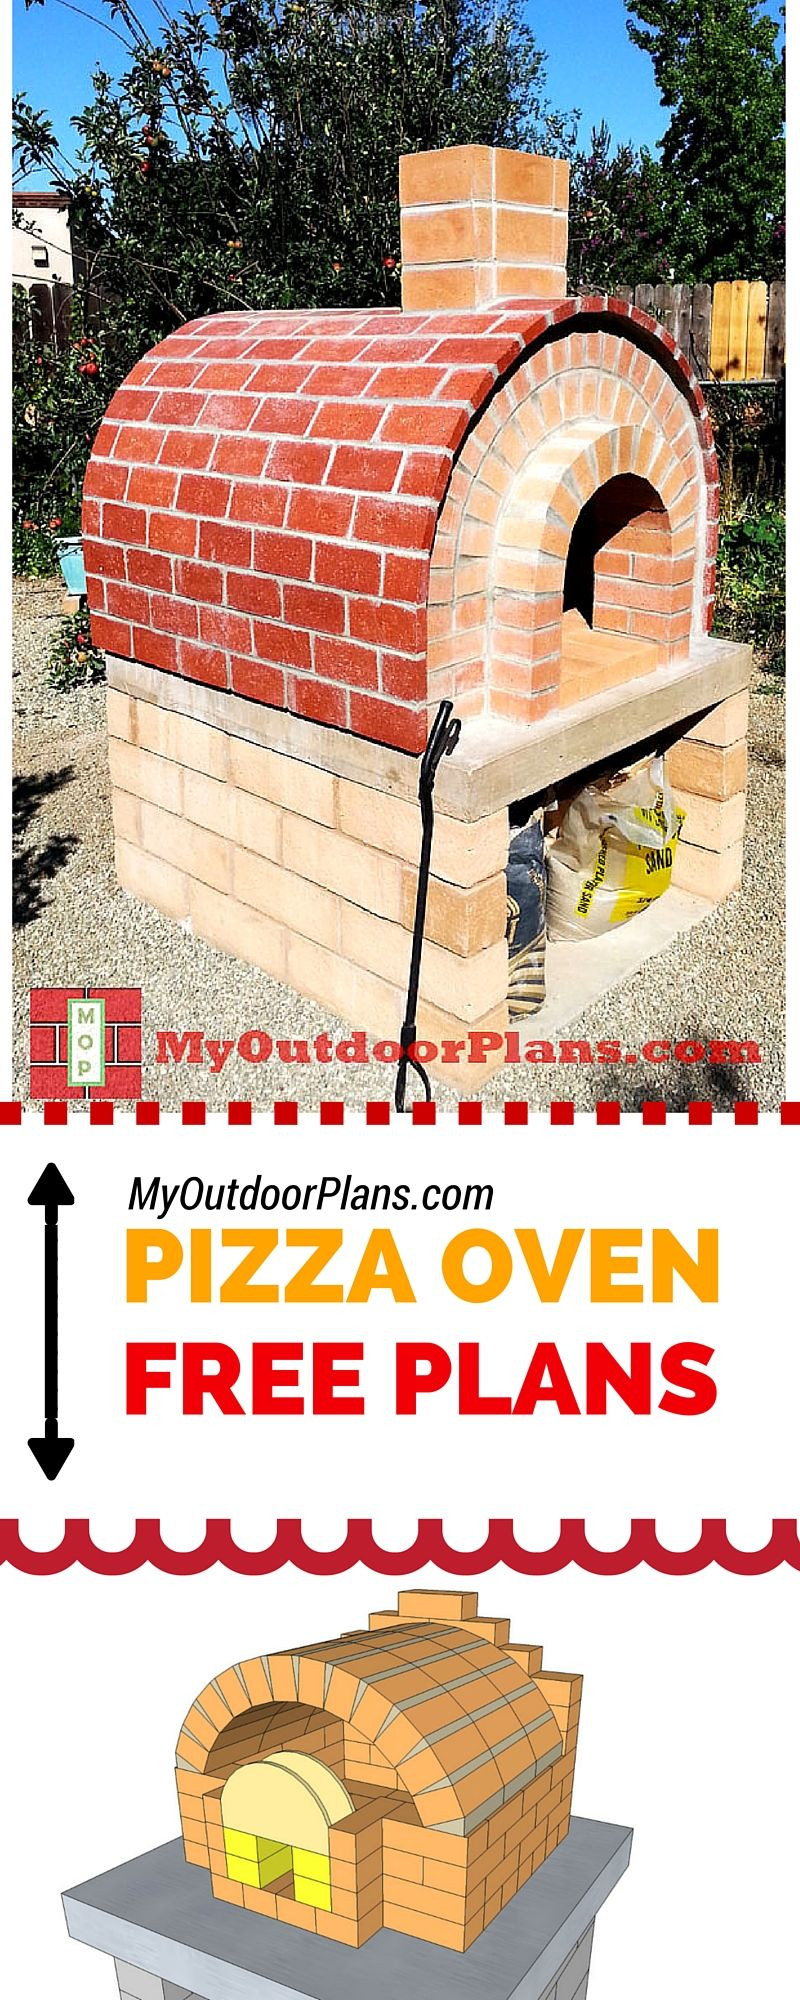 Best ideas about DIY Pizza Oven Plans Free . Save or Pin Pizza oven plans Easy to follow instructions and Now.